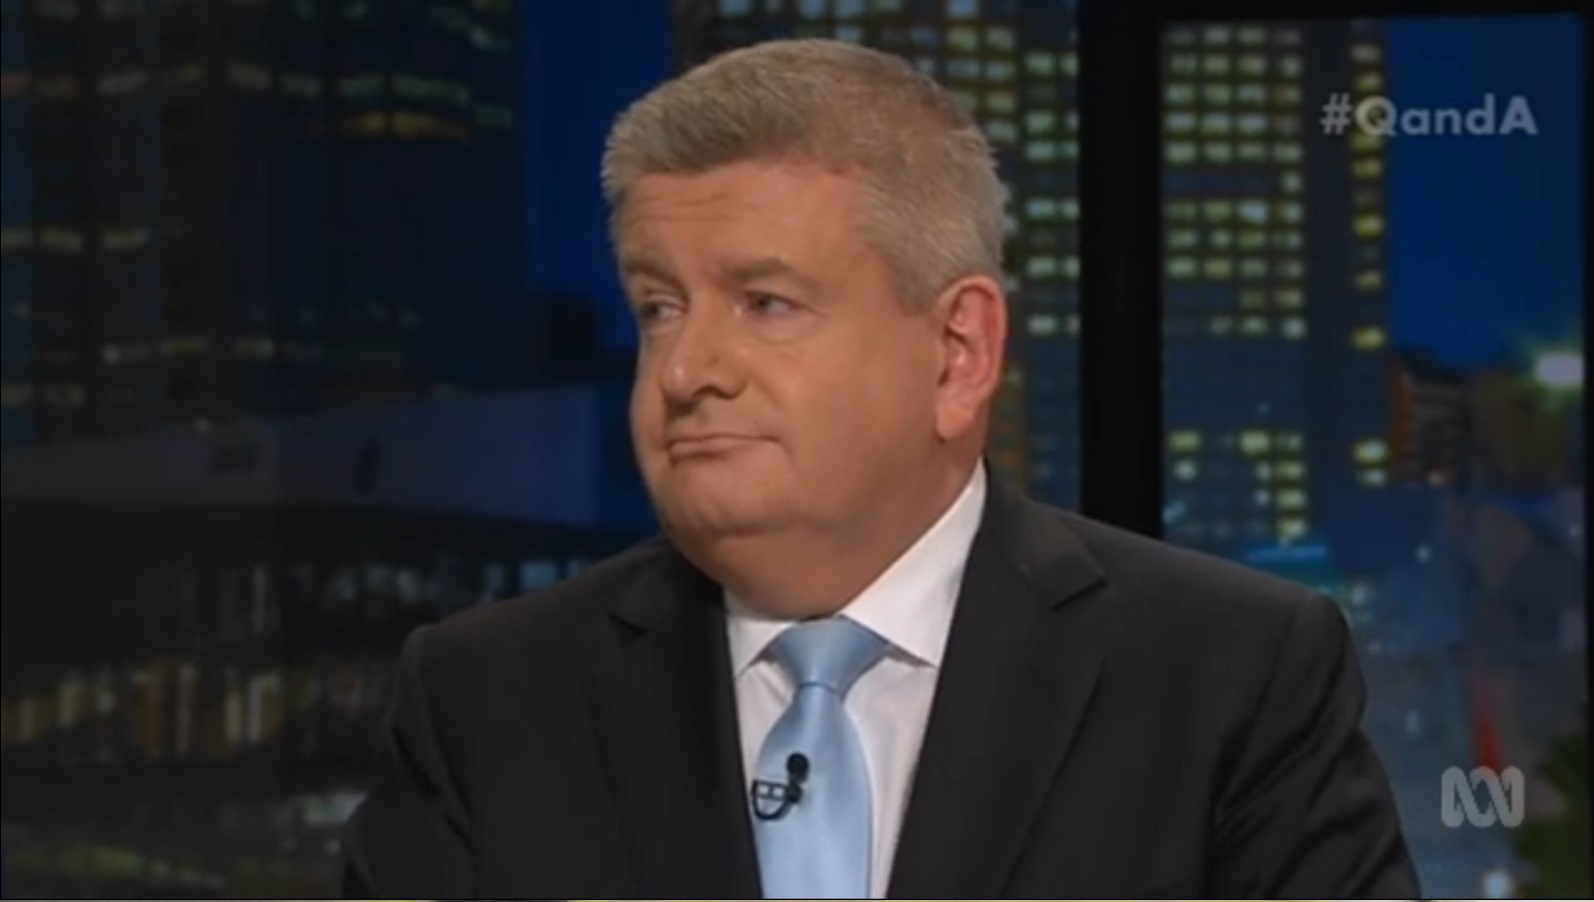 Communications Minister Mitch Fifield on Q&A